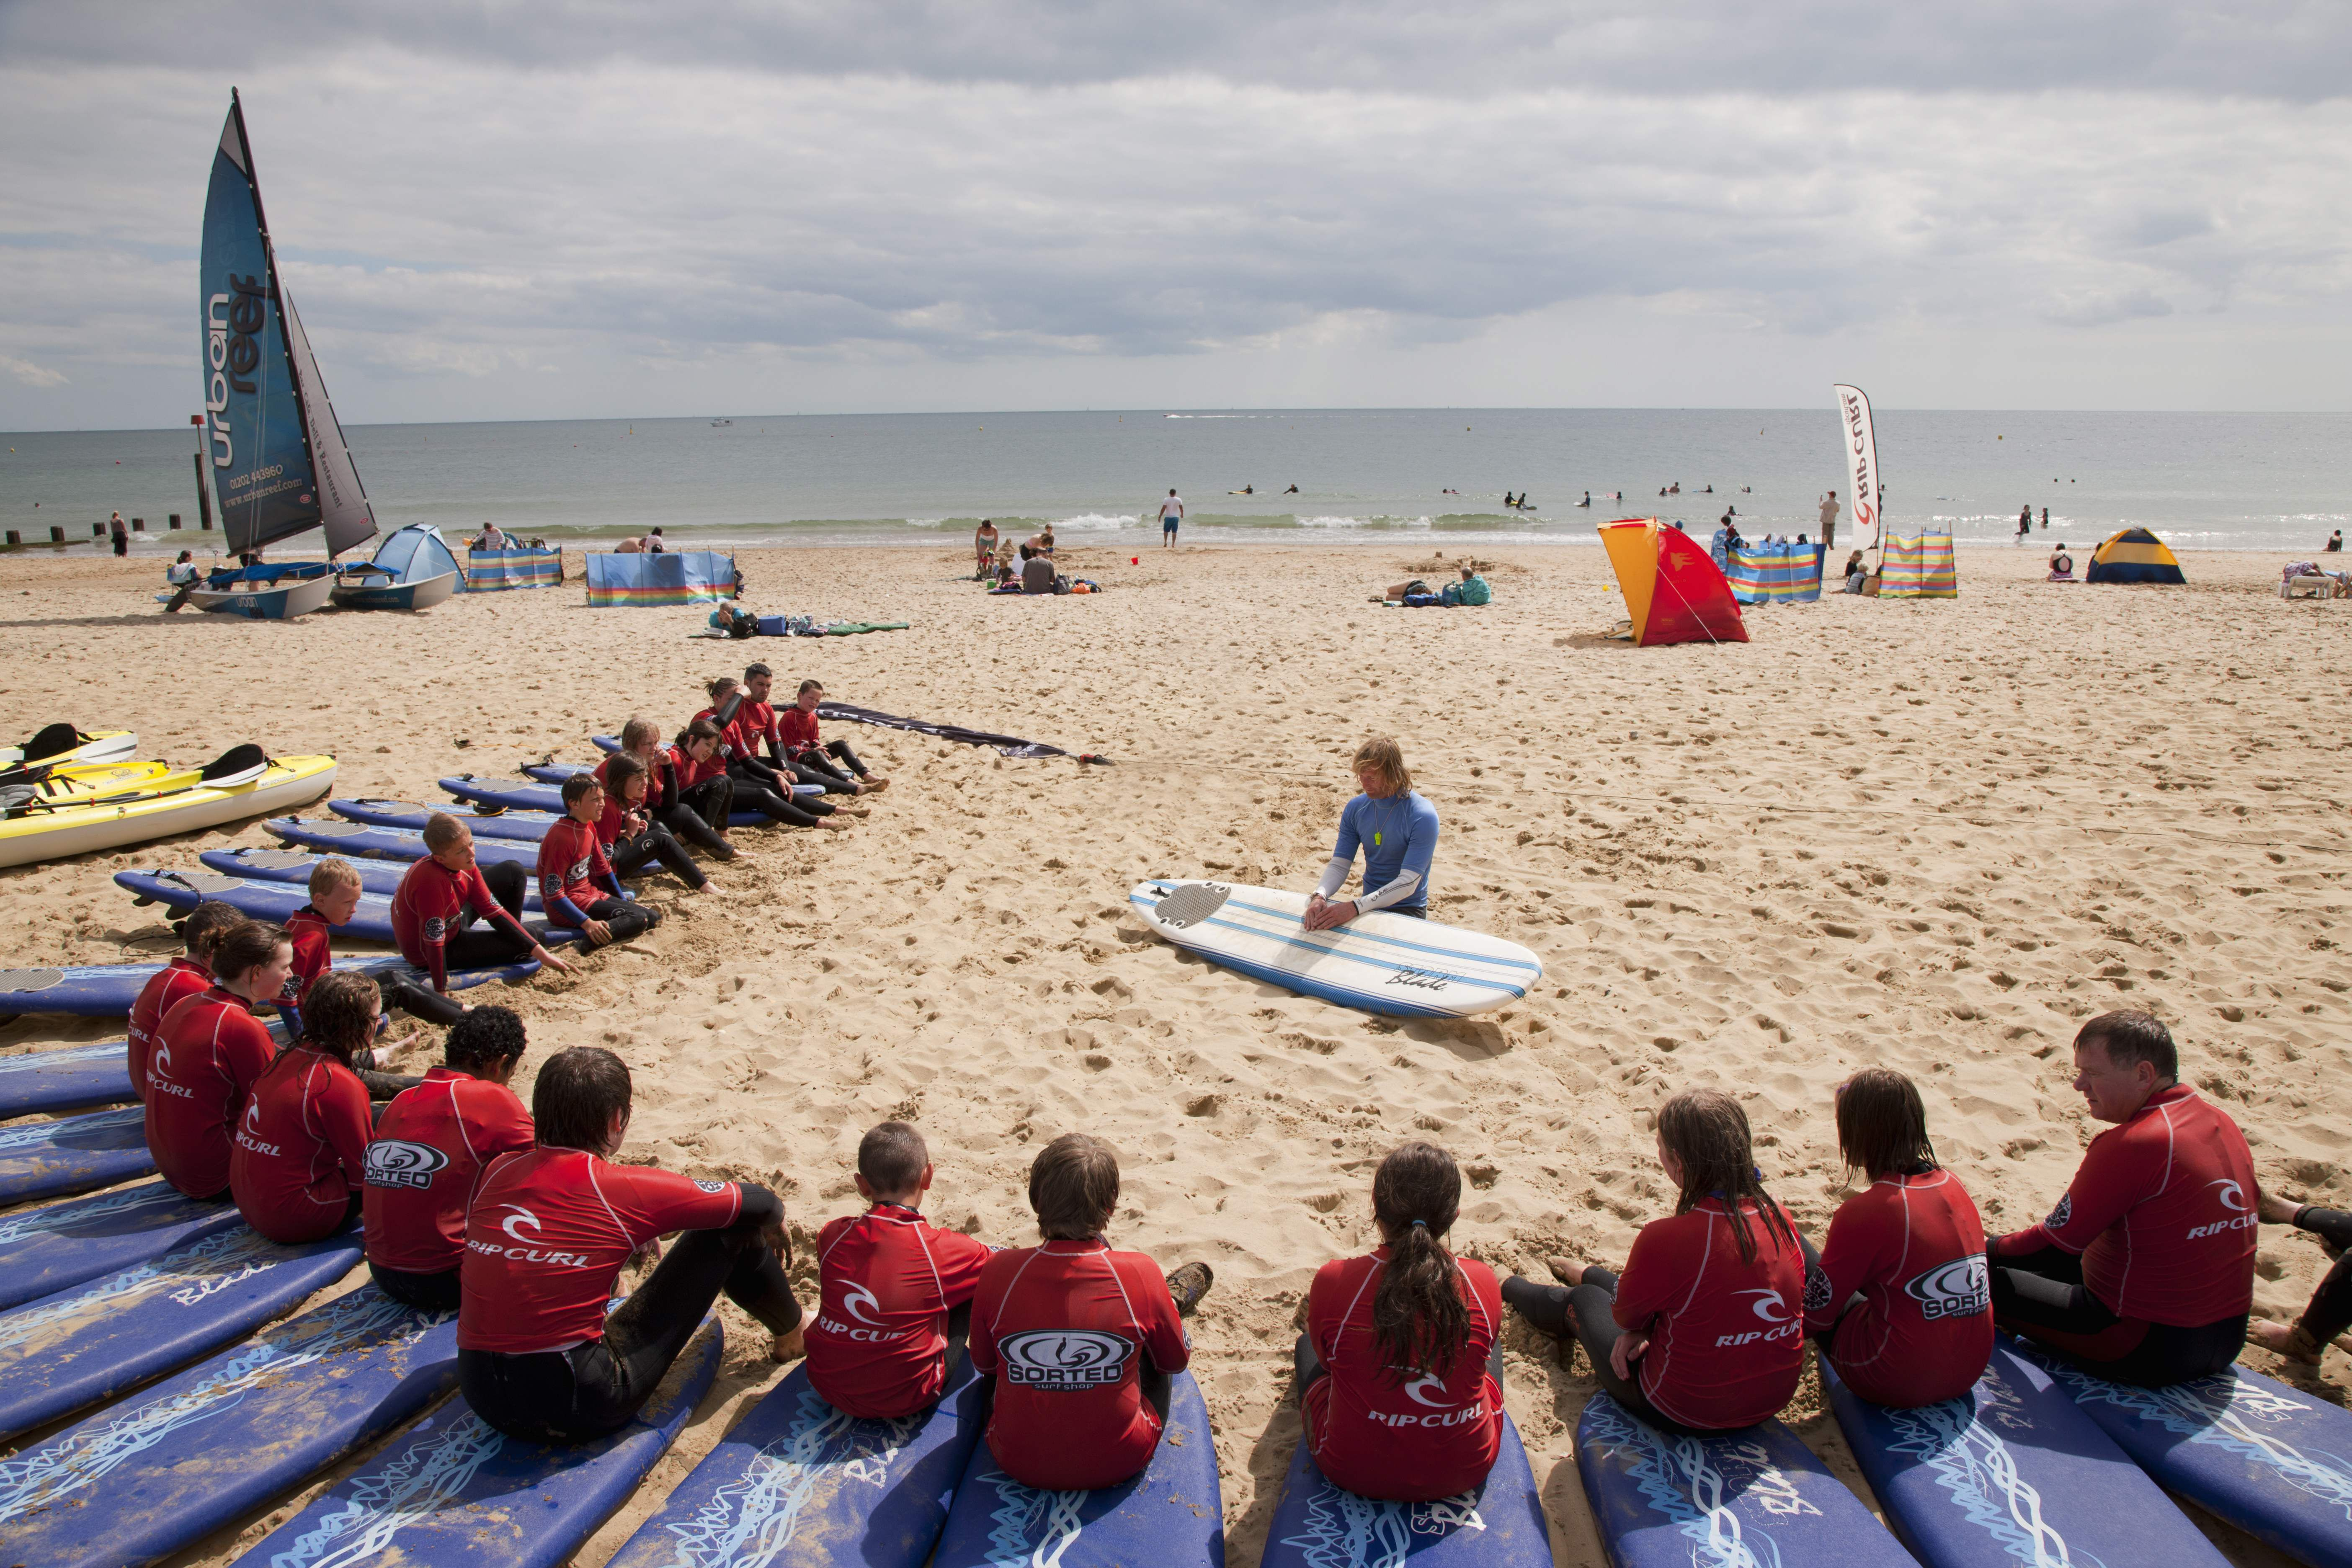 A surf lesson on Boscombe Beach, Bournemouth.